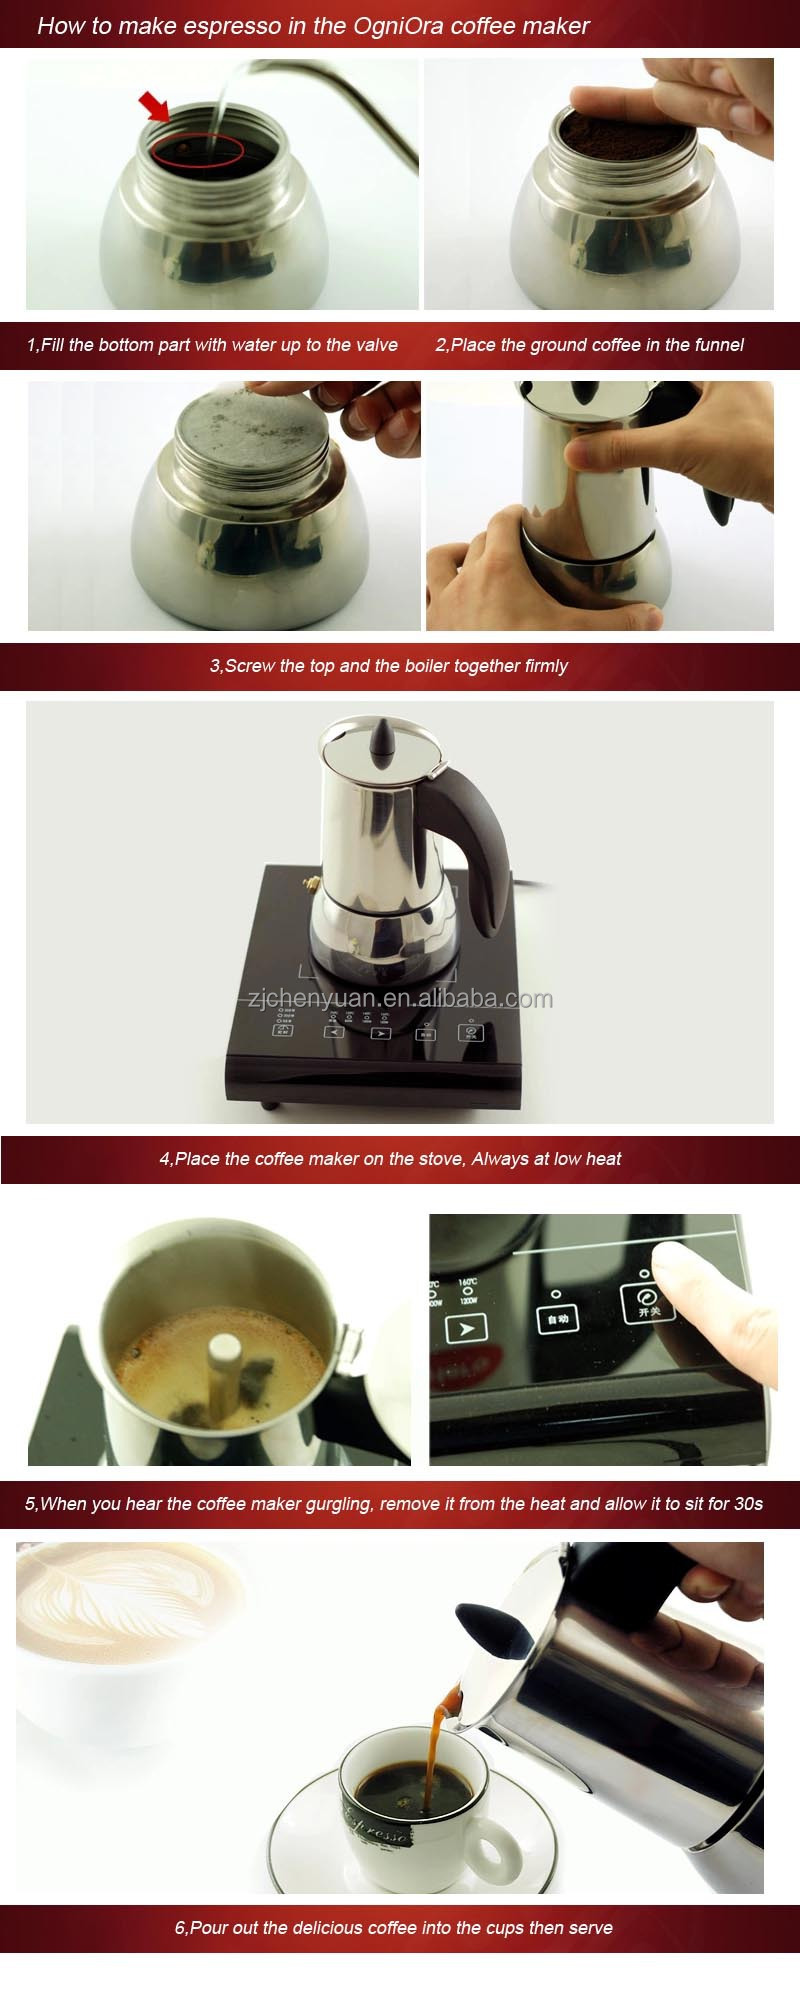 Stainless steel stovetop espresso maker 10 cup - Ogniora Stainless Steel 304 Stove Top 10 Cup Coffee Espresso Maker Coffee Pot